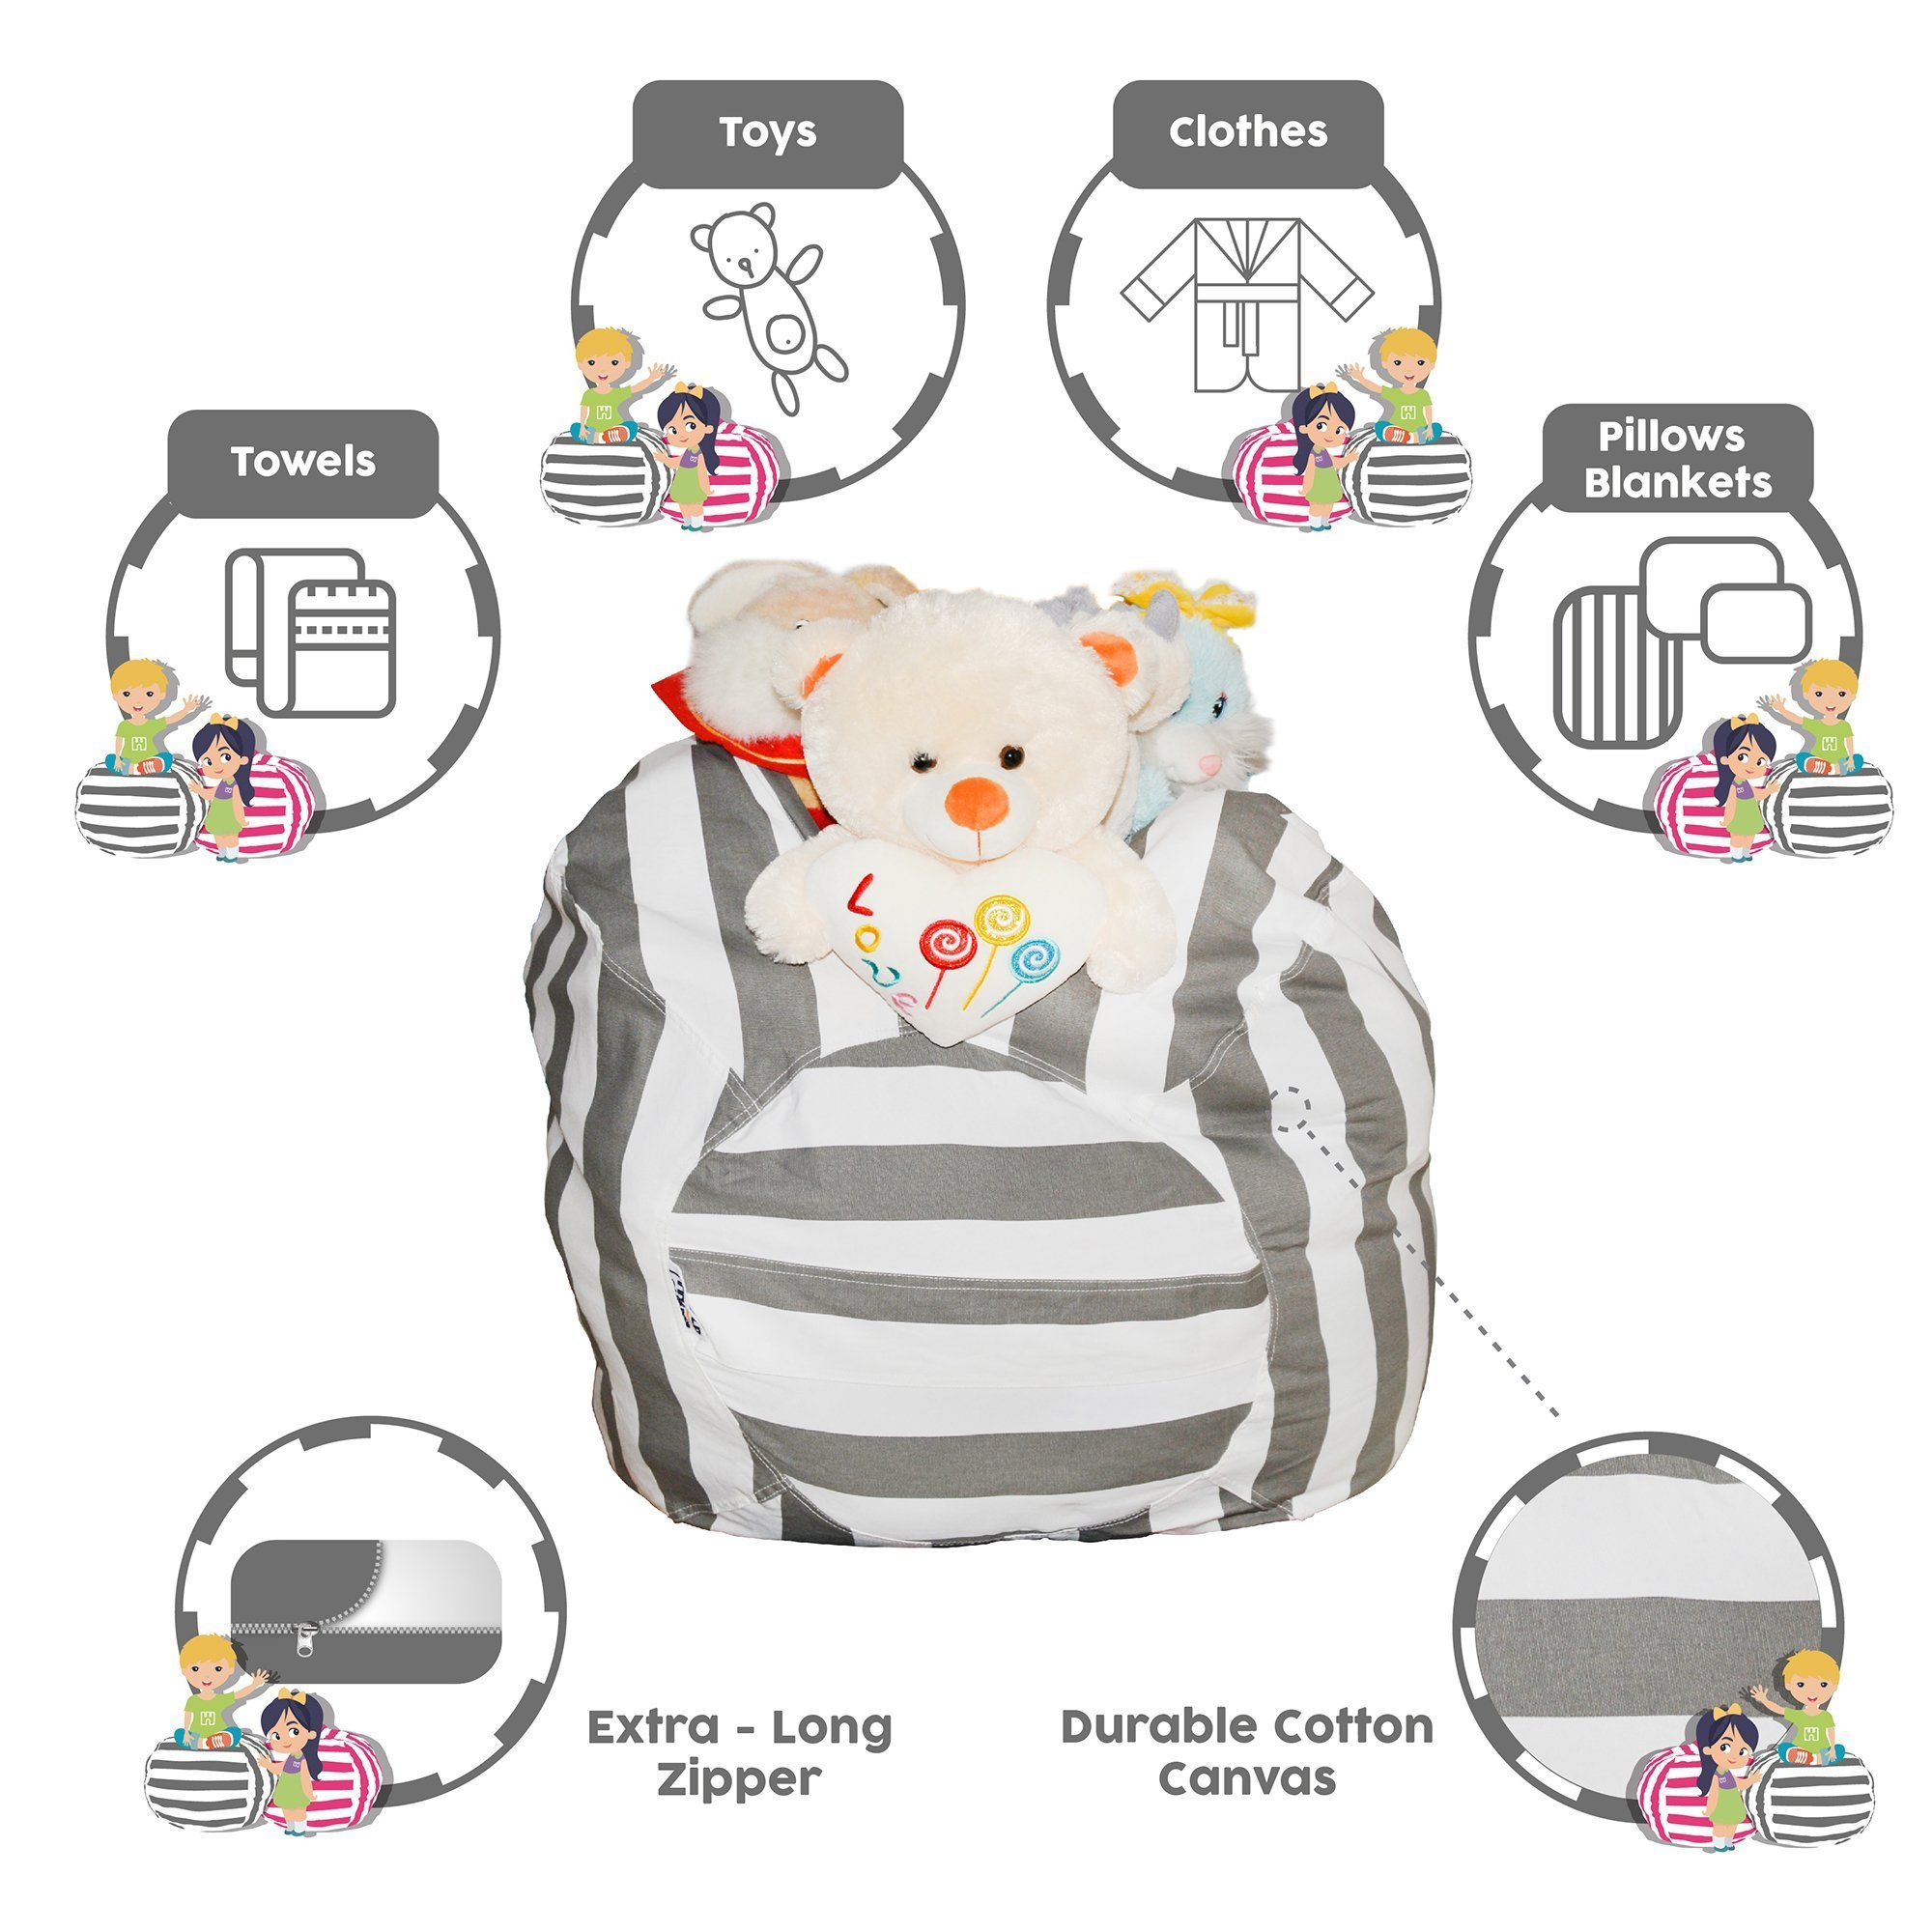 Hold The Door Extra Large Stuffed Animal Storage Bean Bag Chair - Toy Organizer & Comfy Chair - Perfect Storage Solution for Plush Toys, Blankets, Towels & Clothes - (Grey Striped, 38'') by Hold The Door (Image #3)